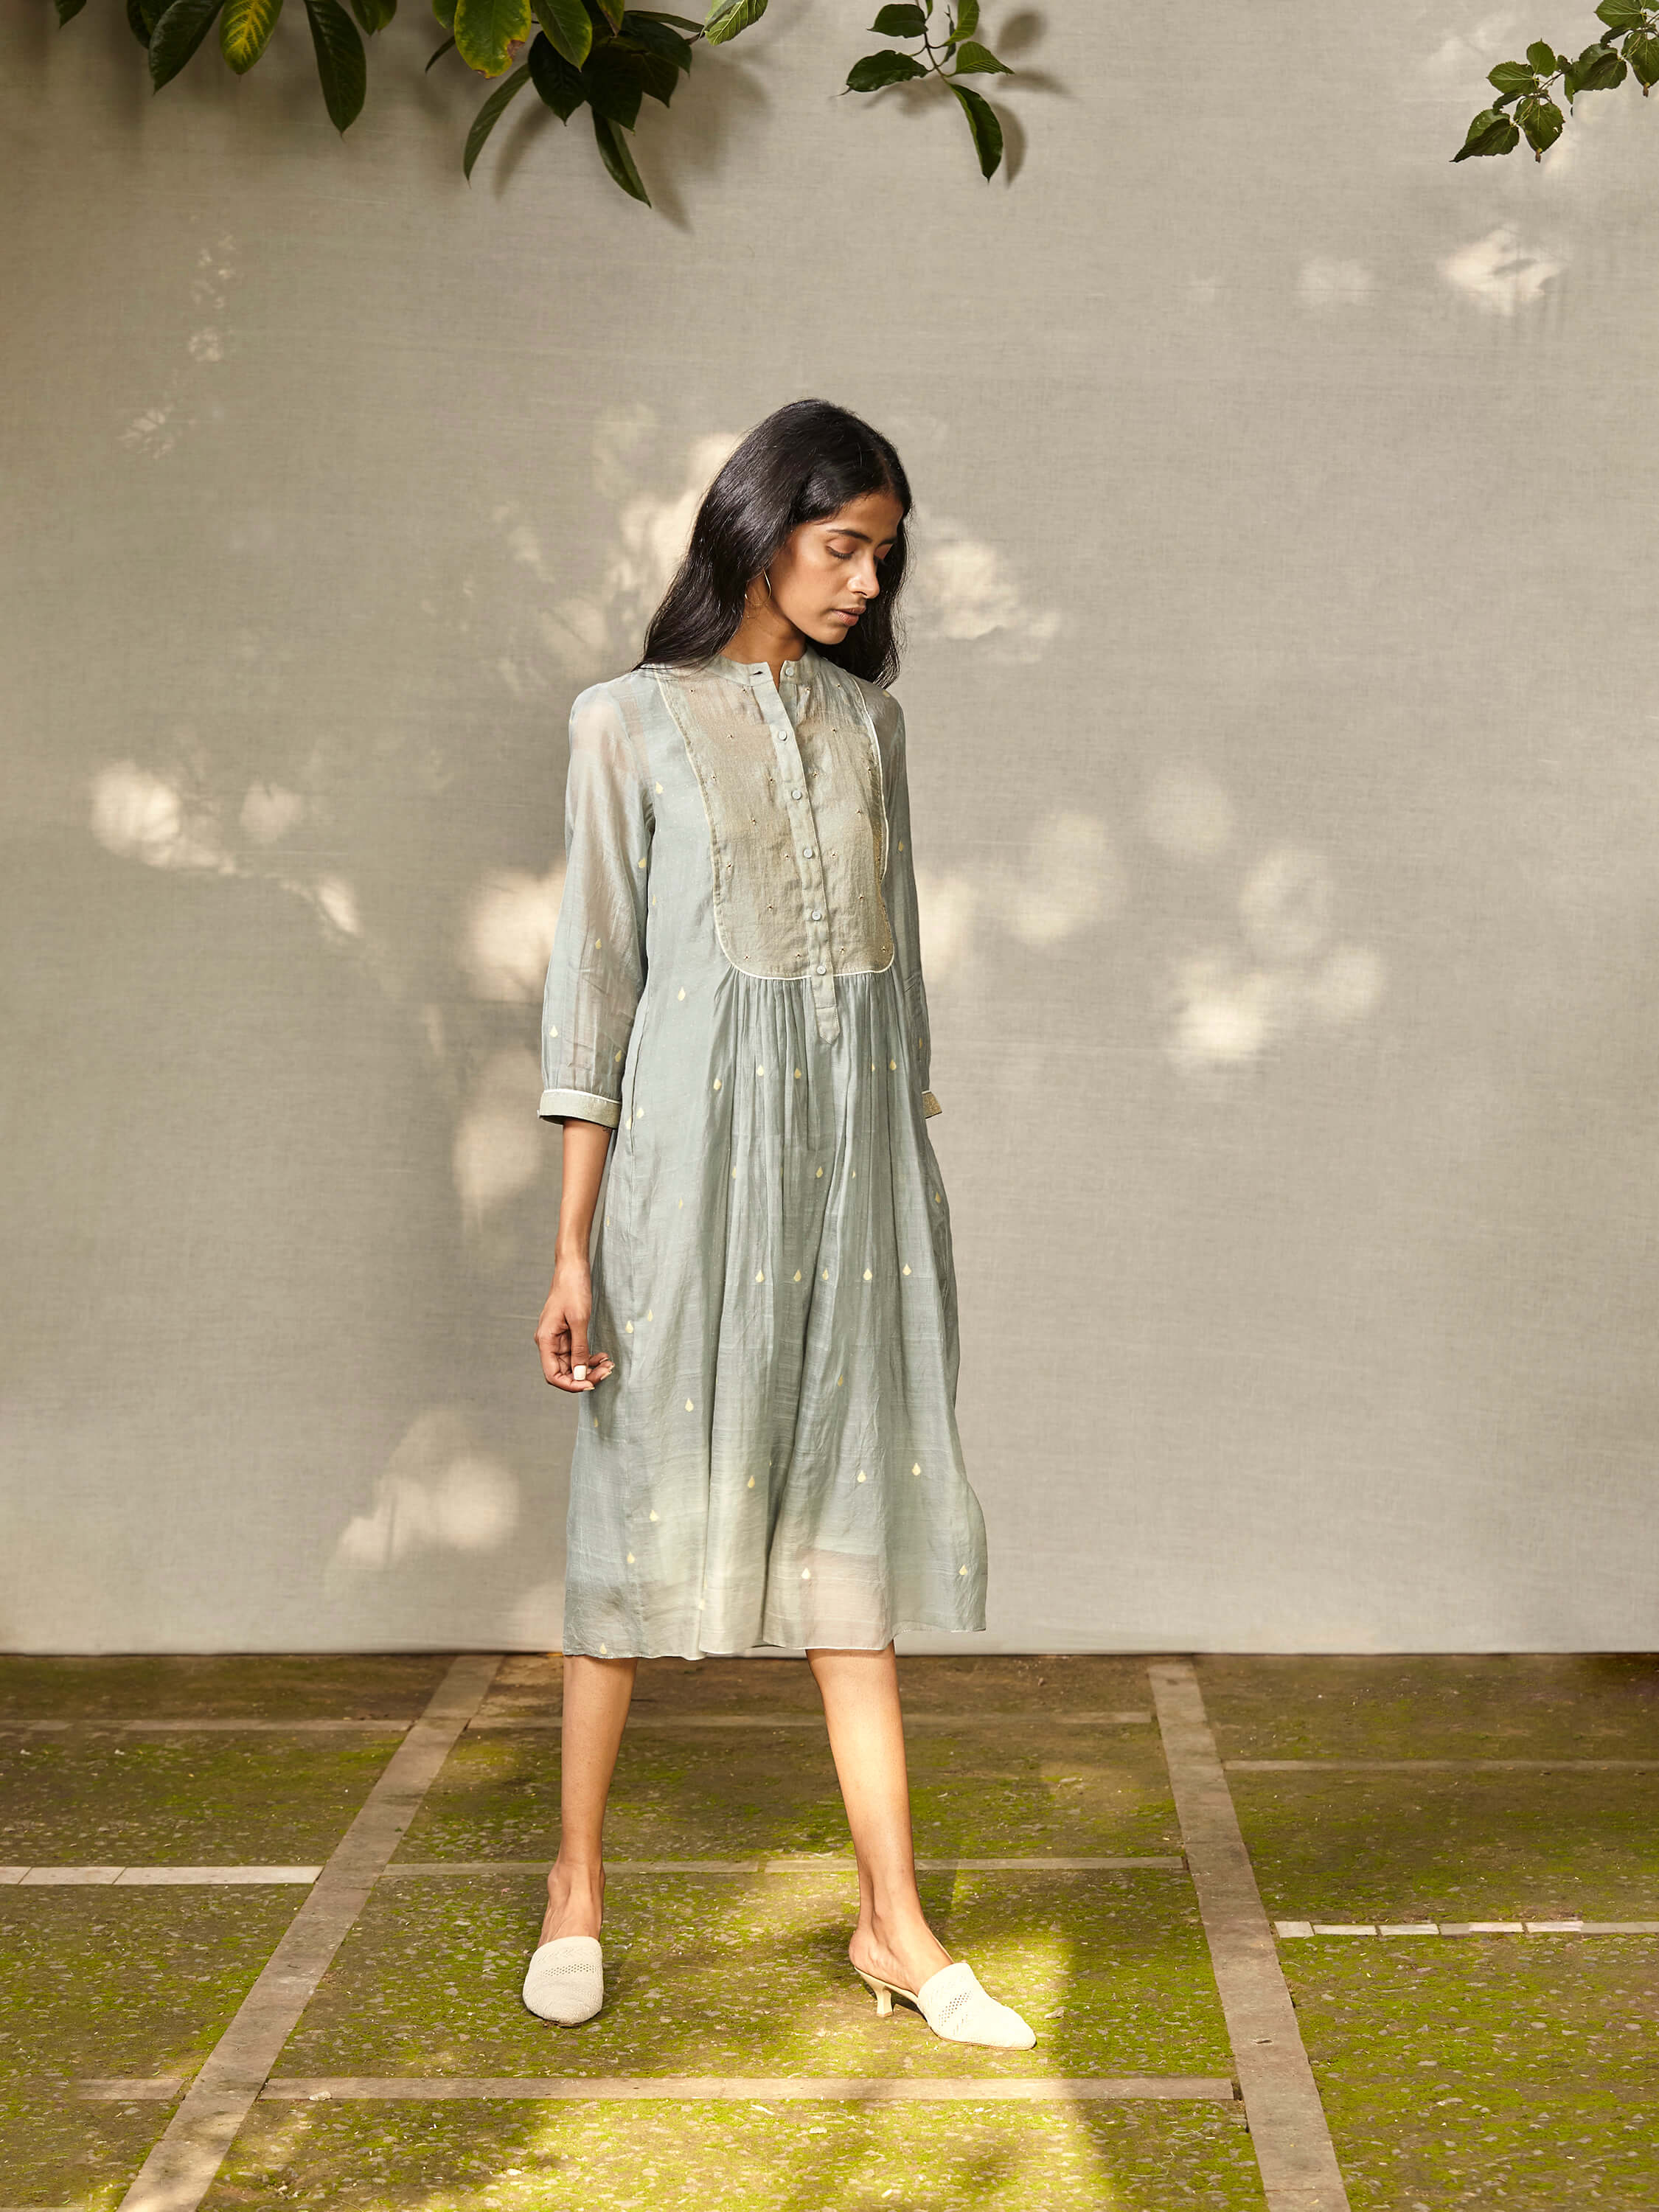 Raindrops Dress - BunaStudio